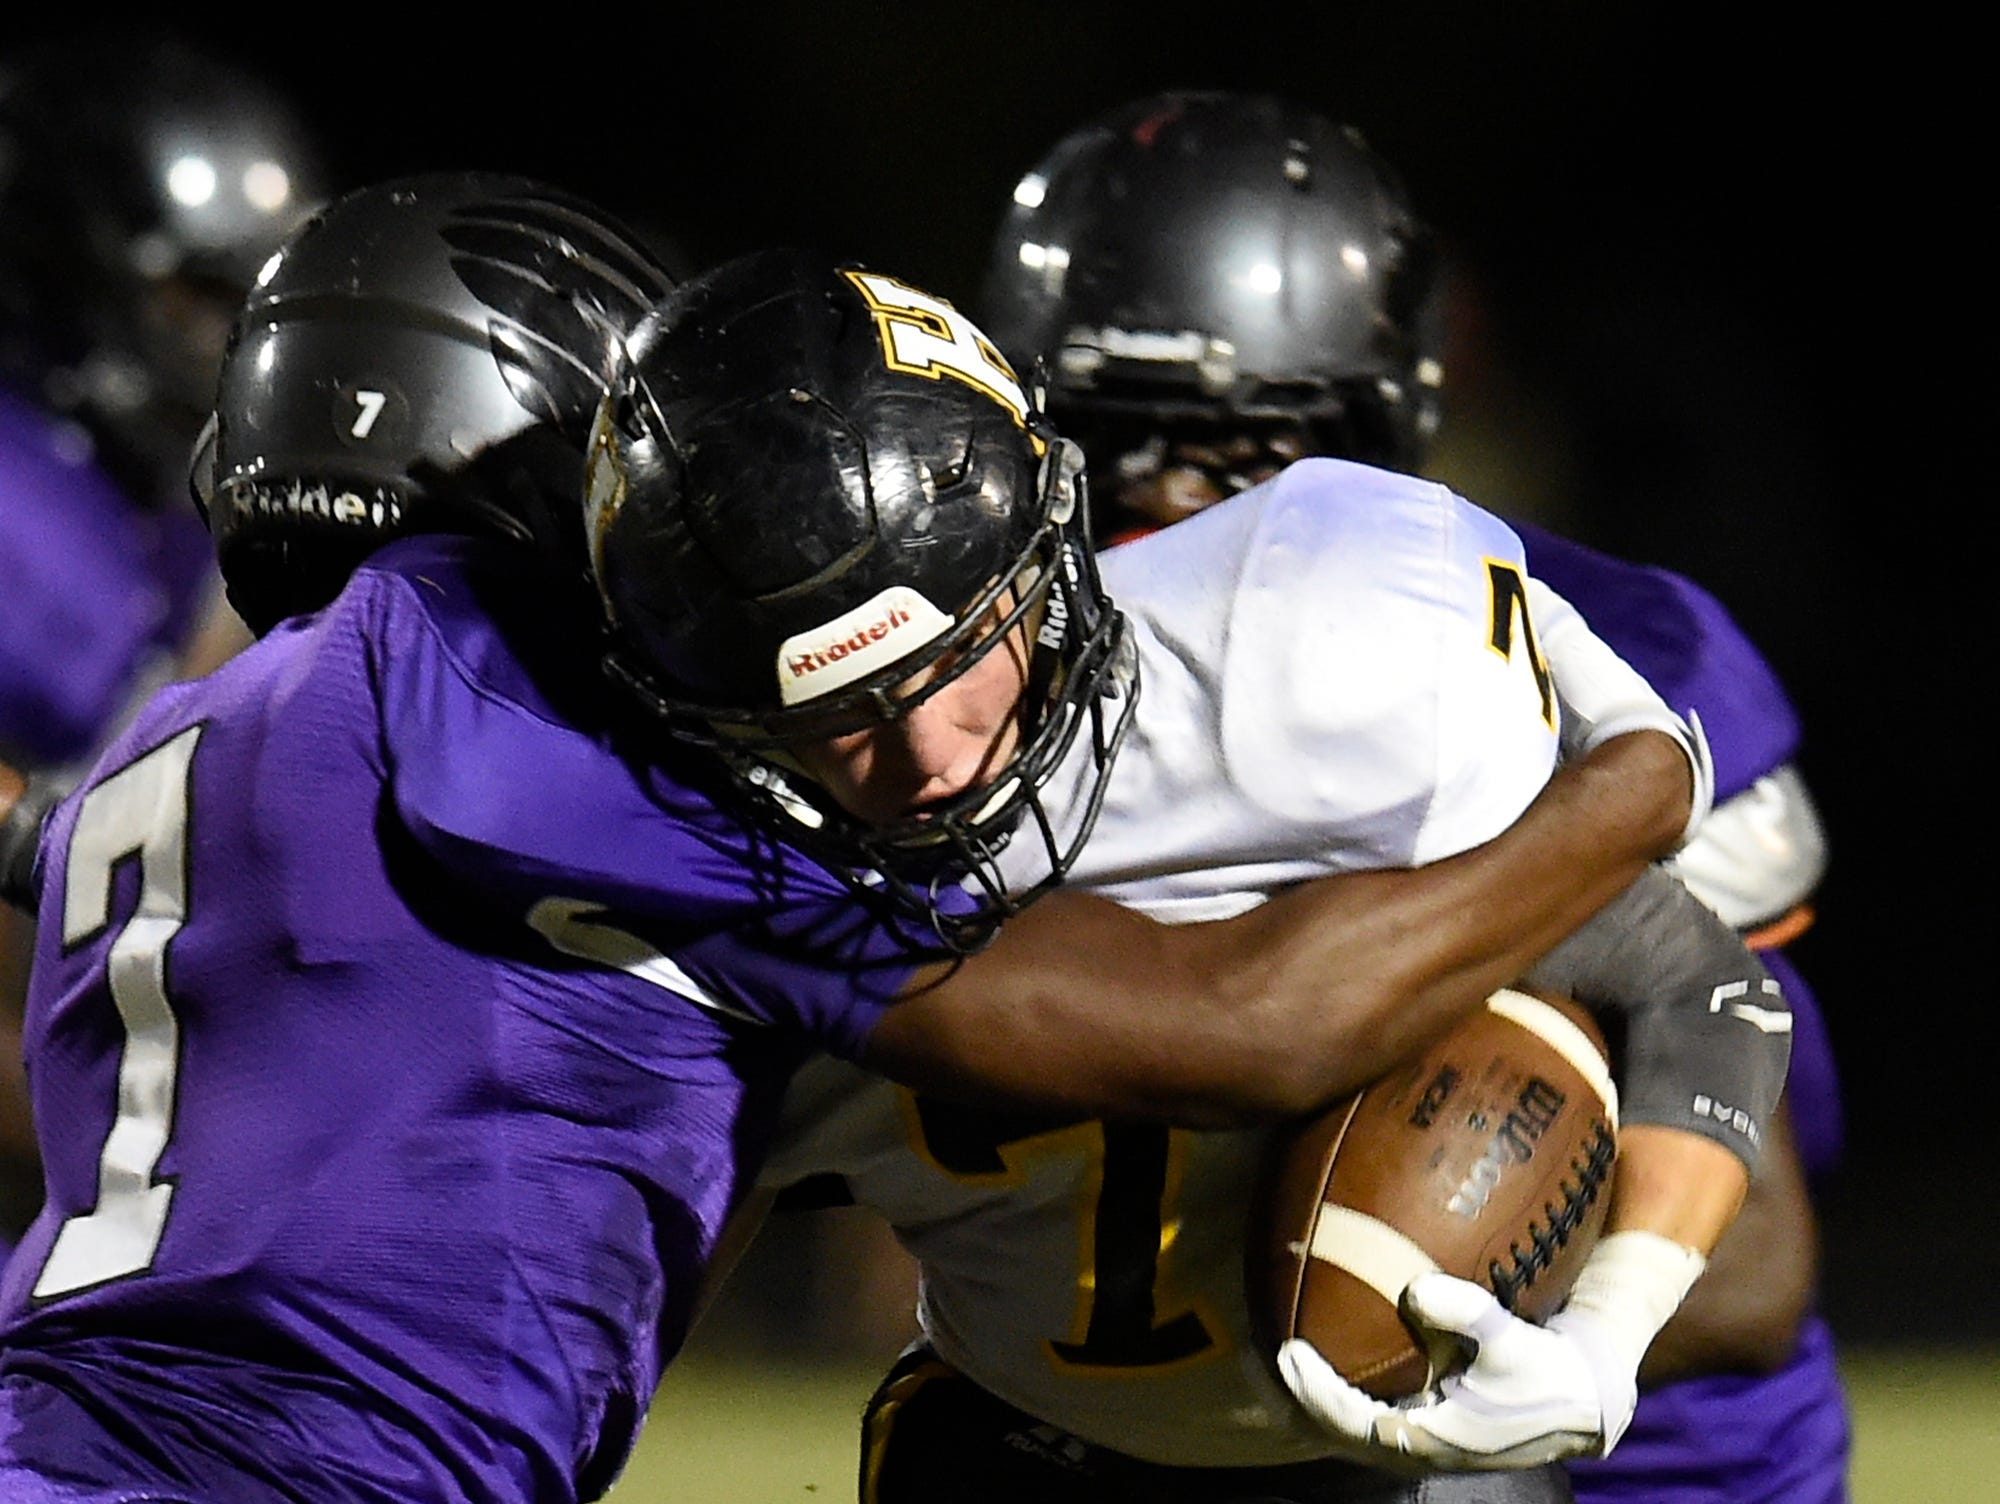 Hendersonville senior Weston Schwerdt (7) carries the ball during Friday's 47-46 loss at Cane Ridge.